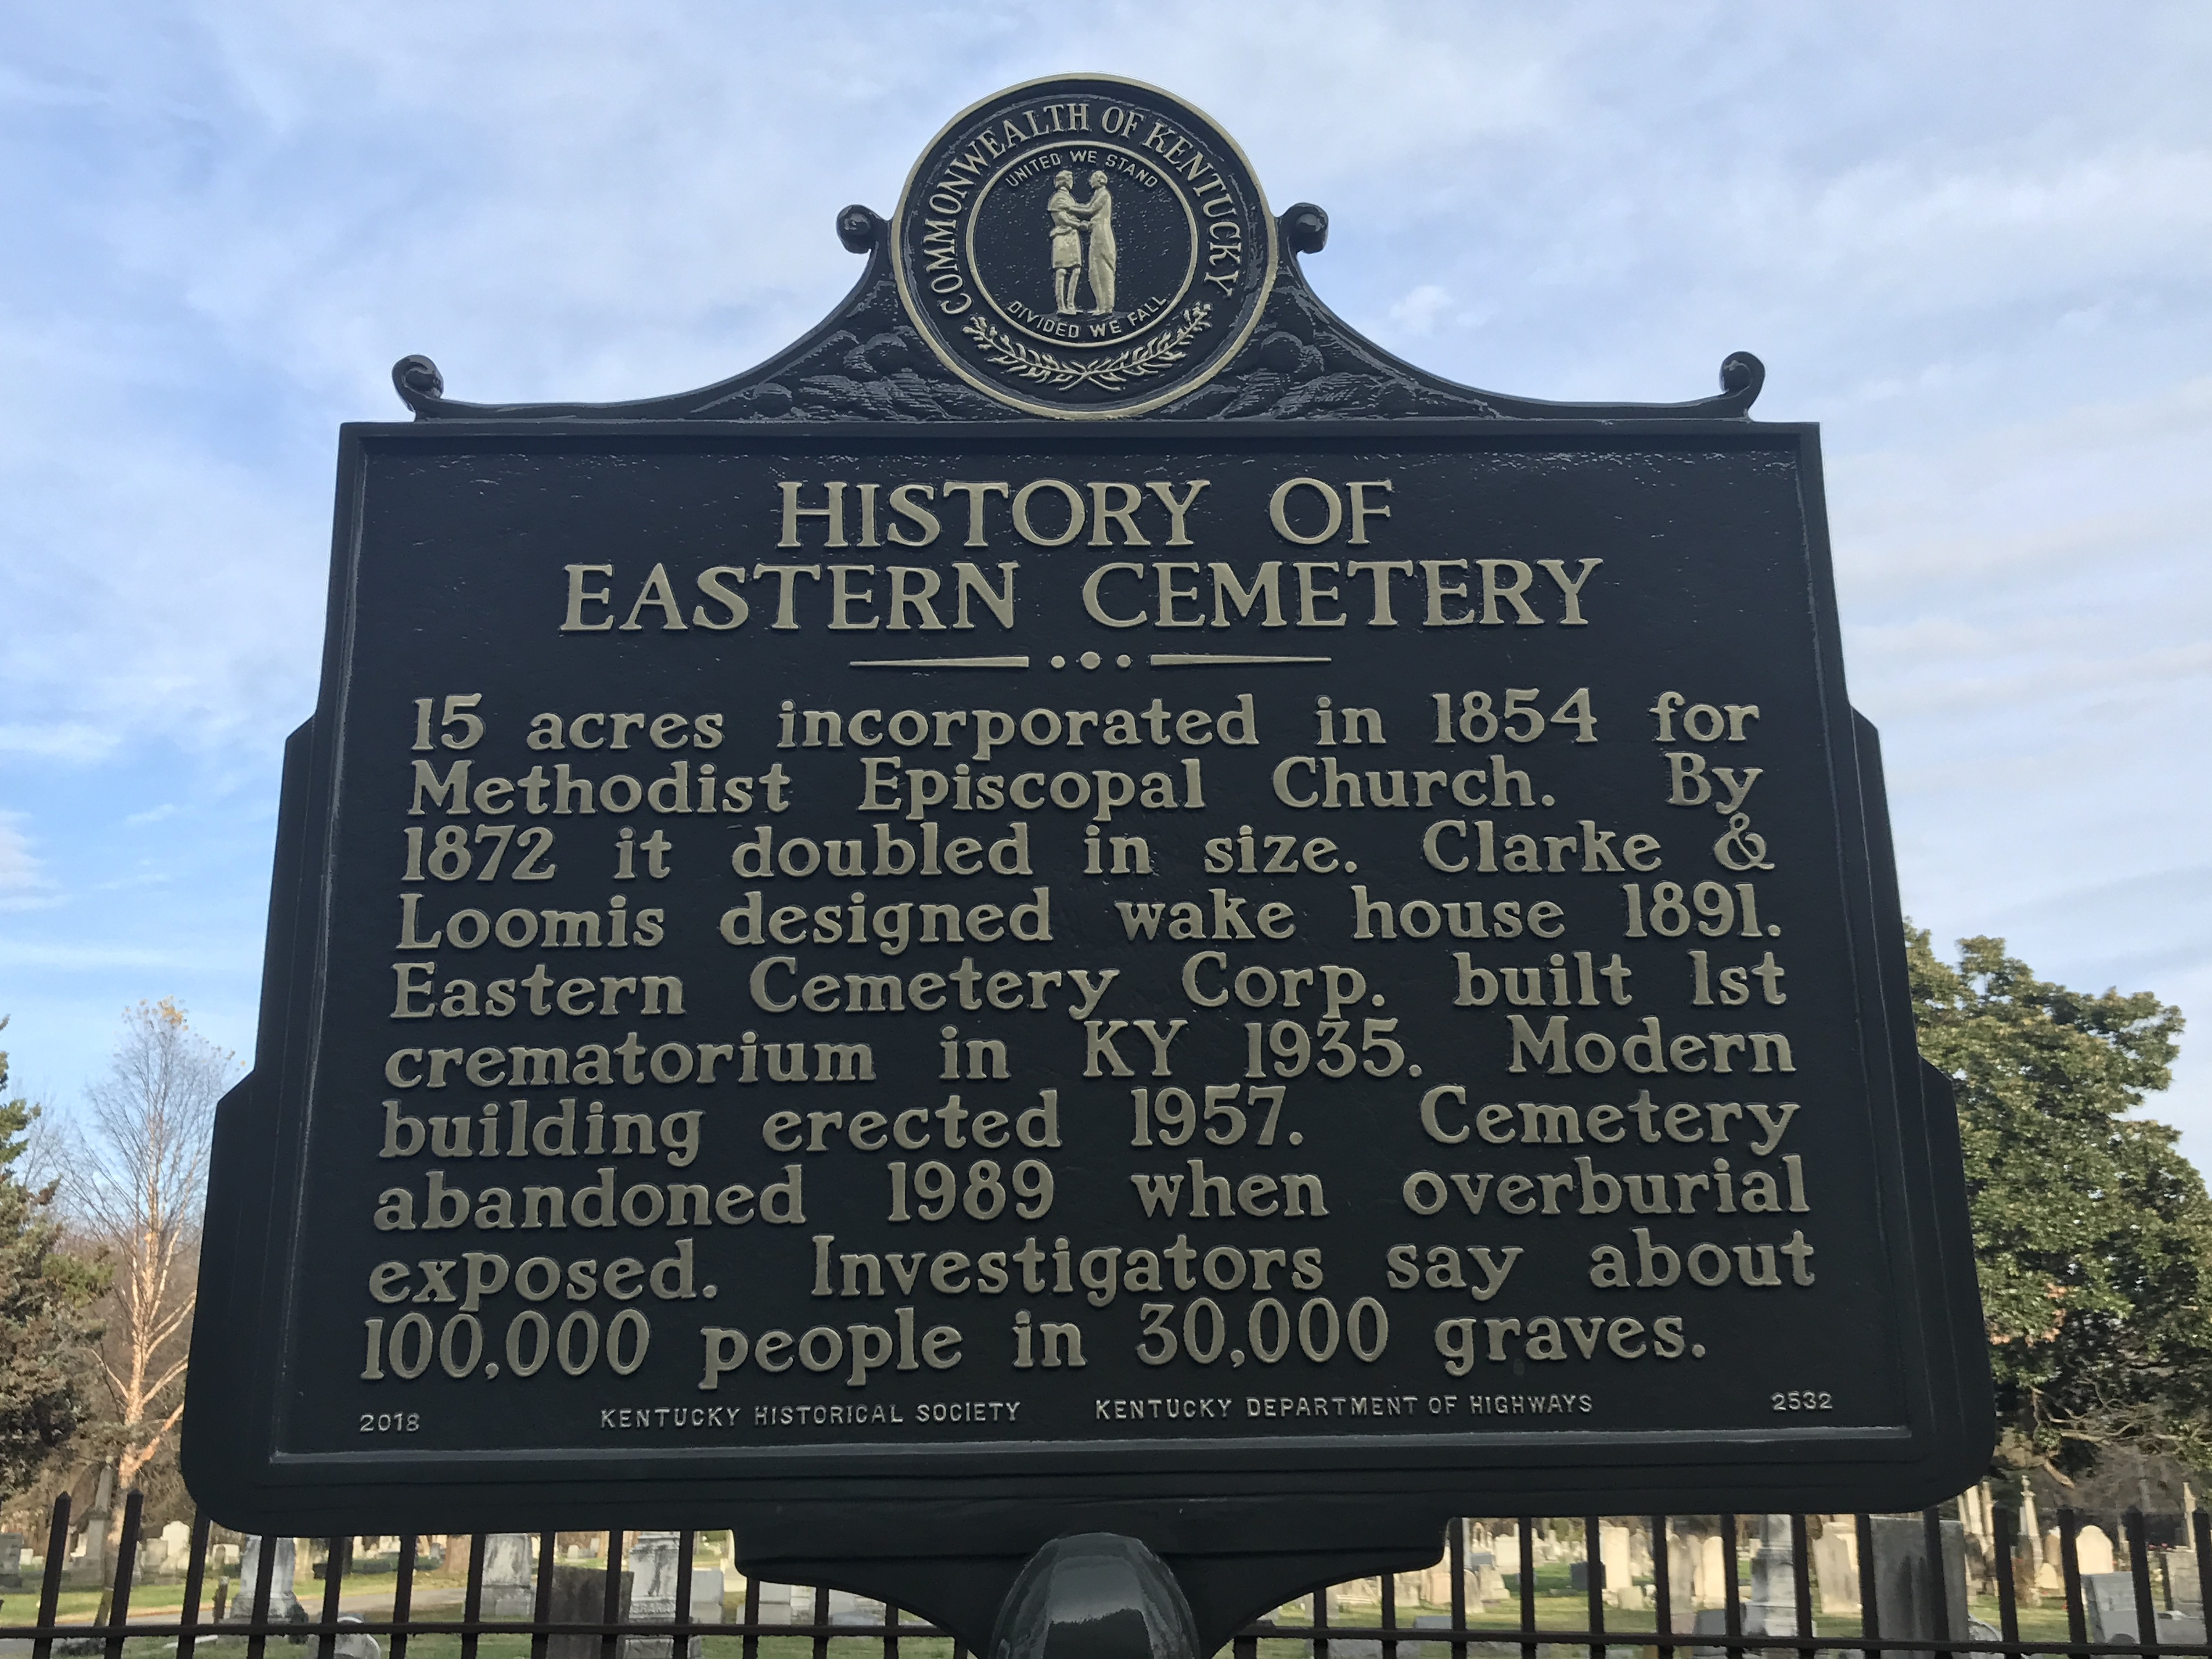 History of Eastern Cemetery Marker